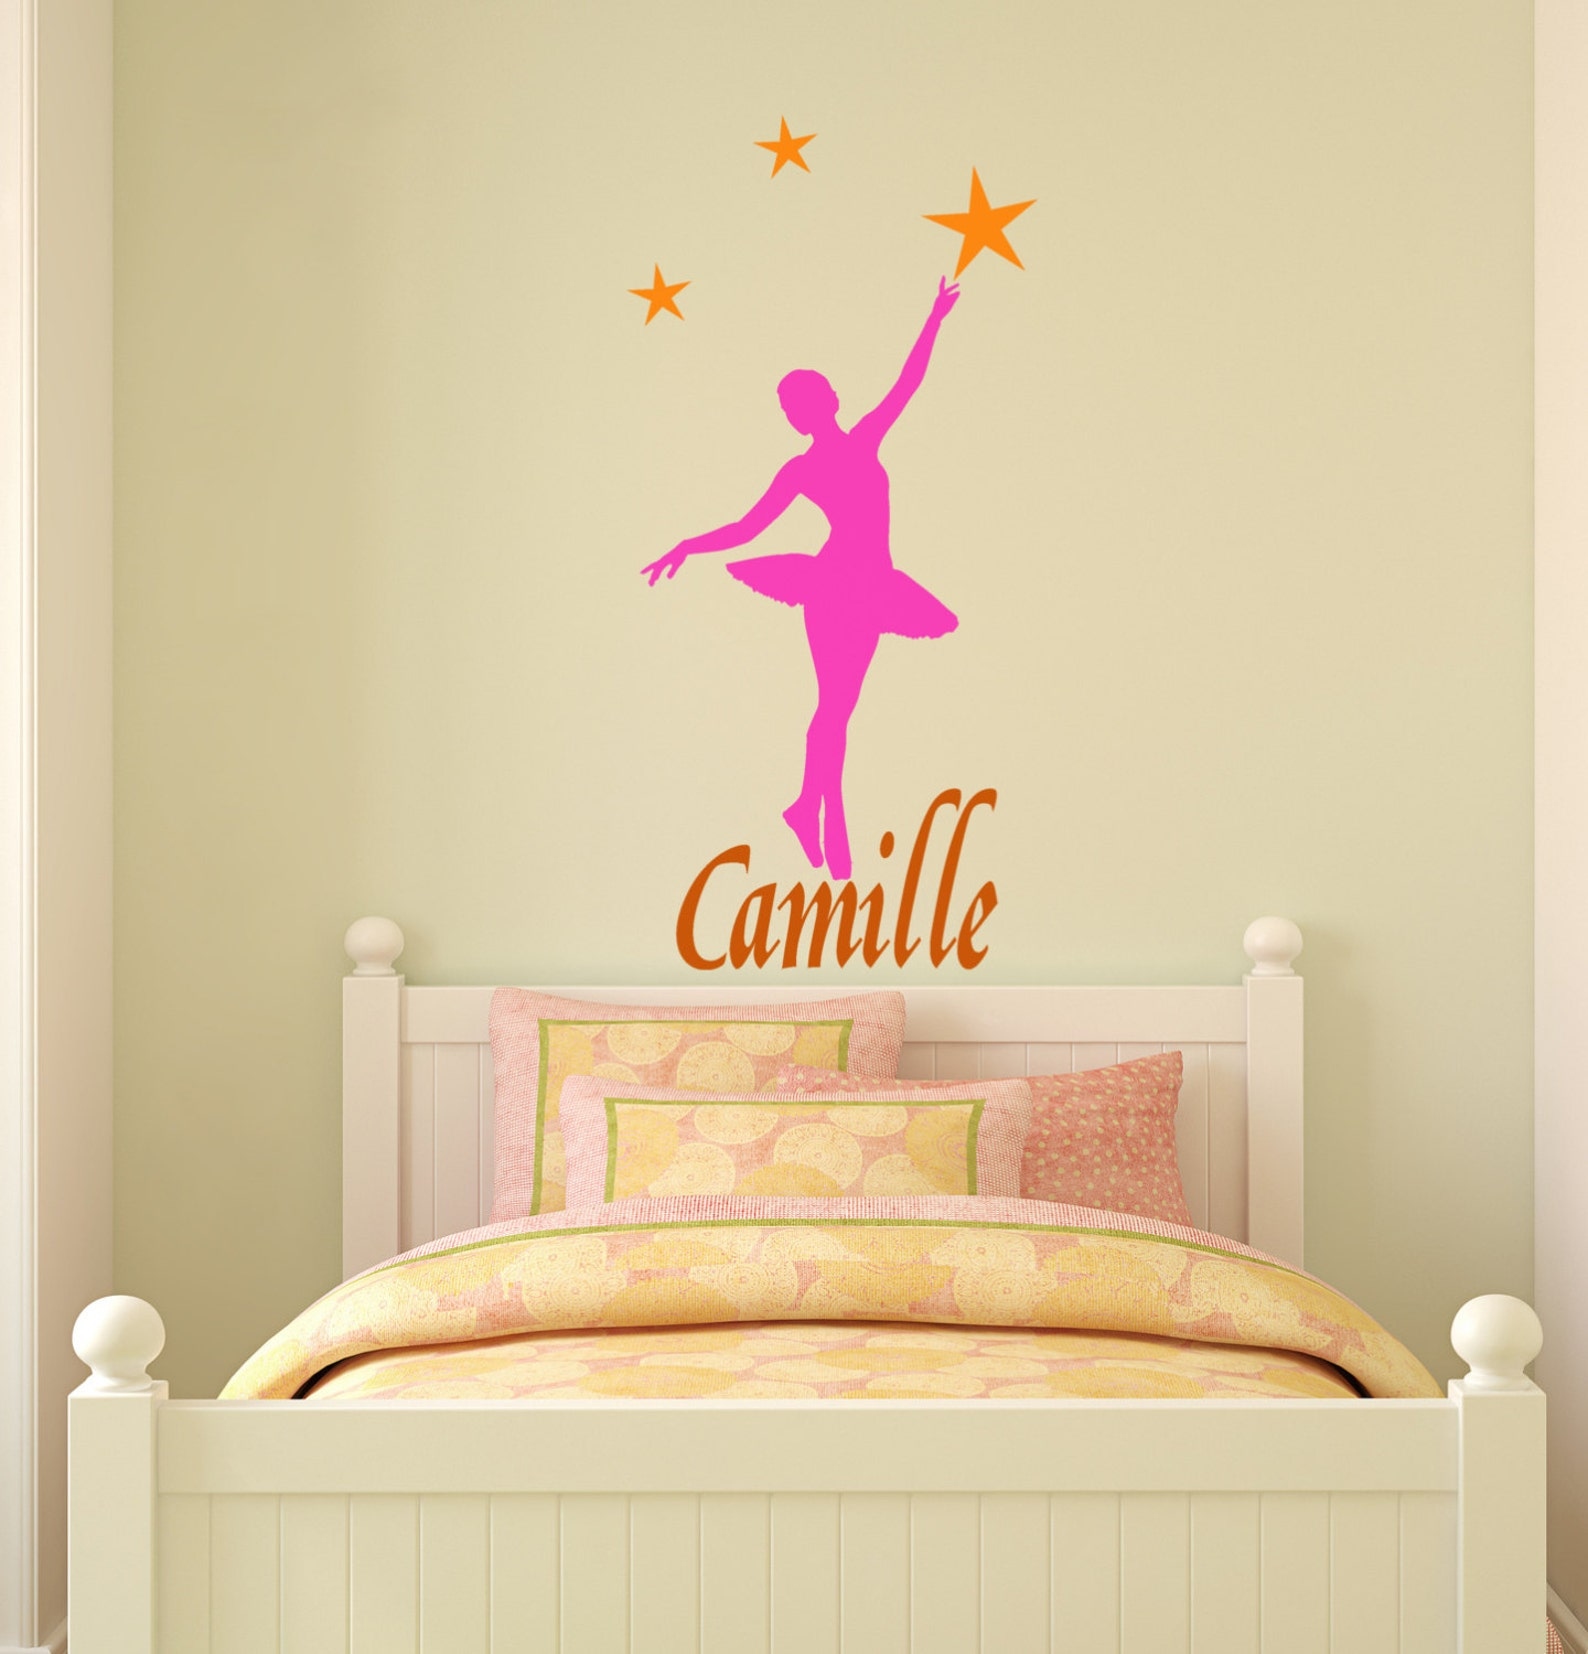 ballerina dancer wall decal, ballet sticker, name decal, girls bedroom personalized decal, teen room sticker, star decal, 19 x 4